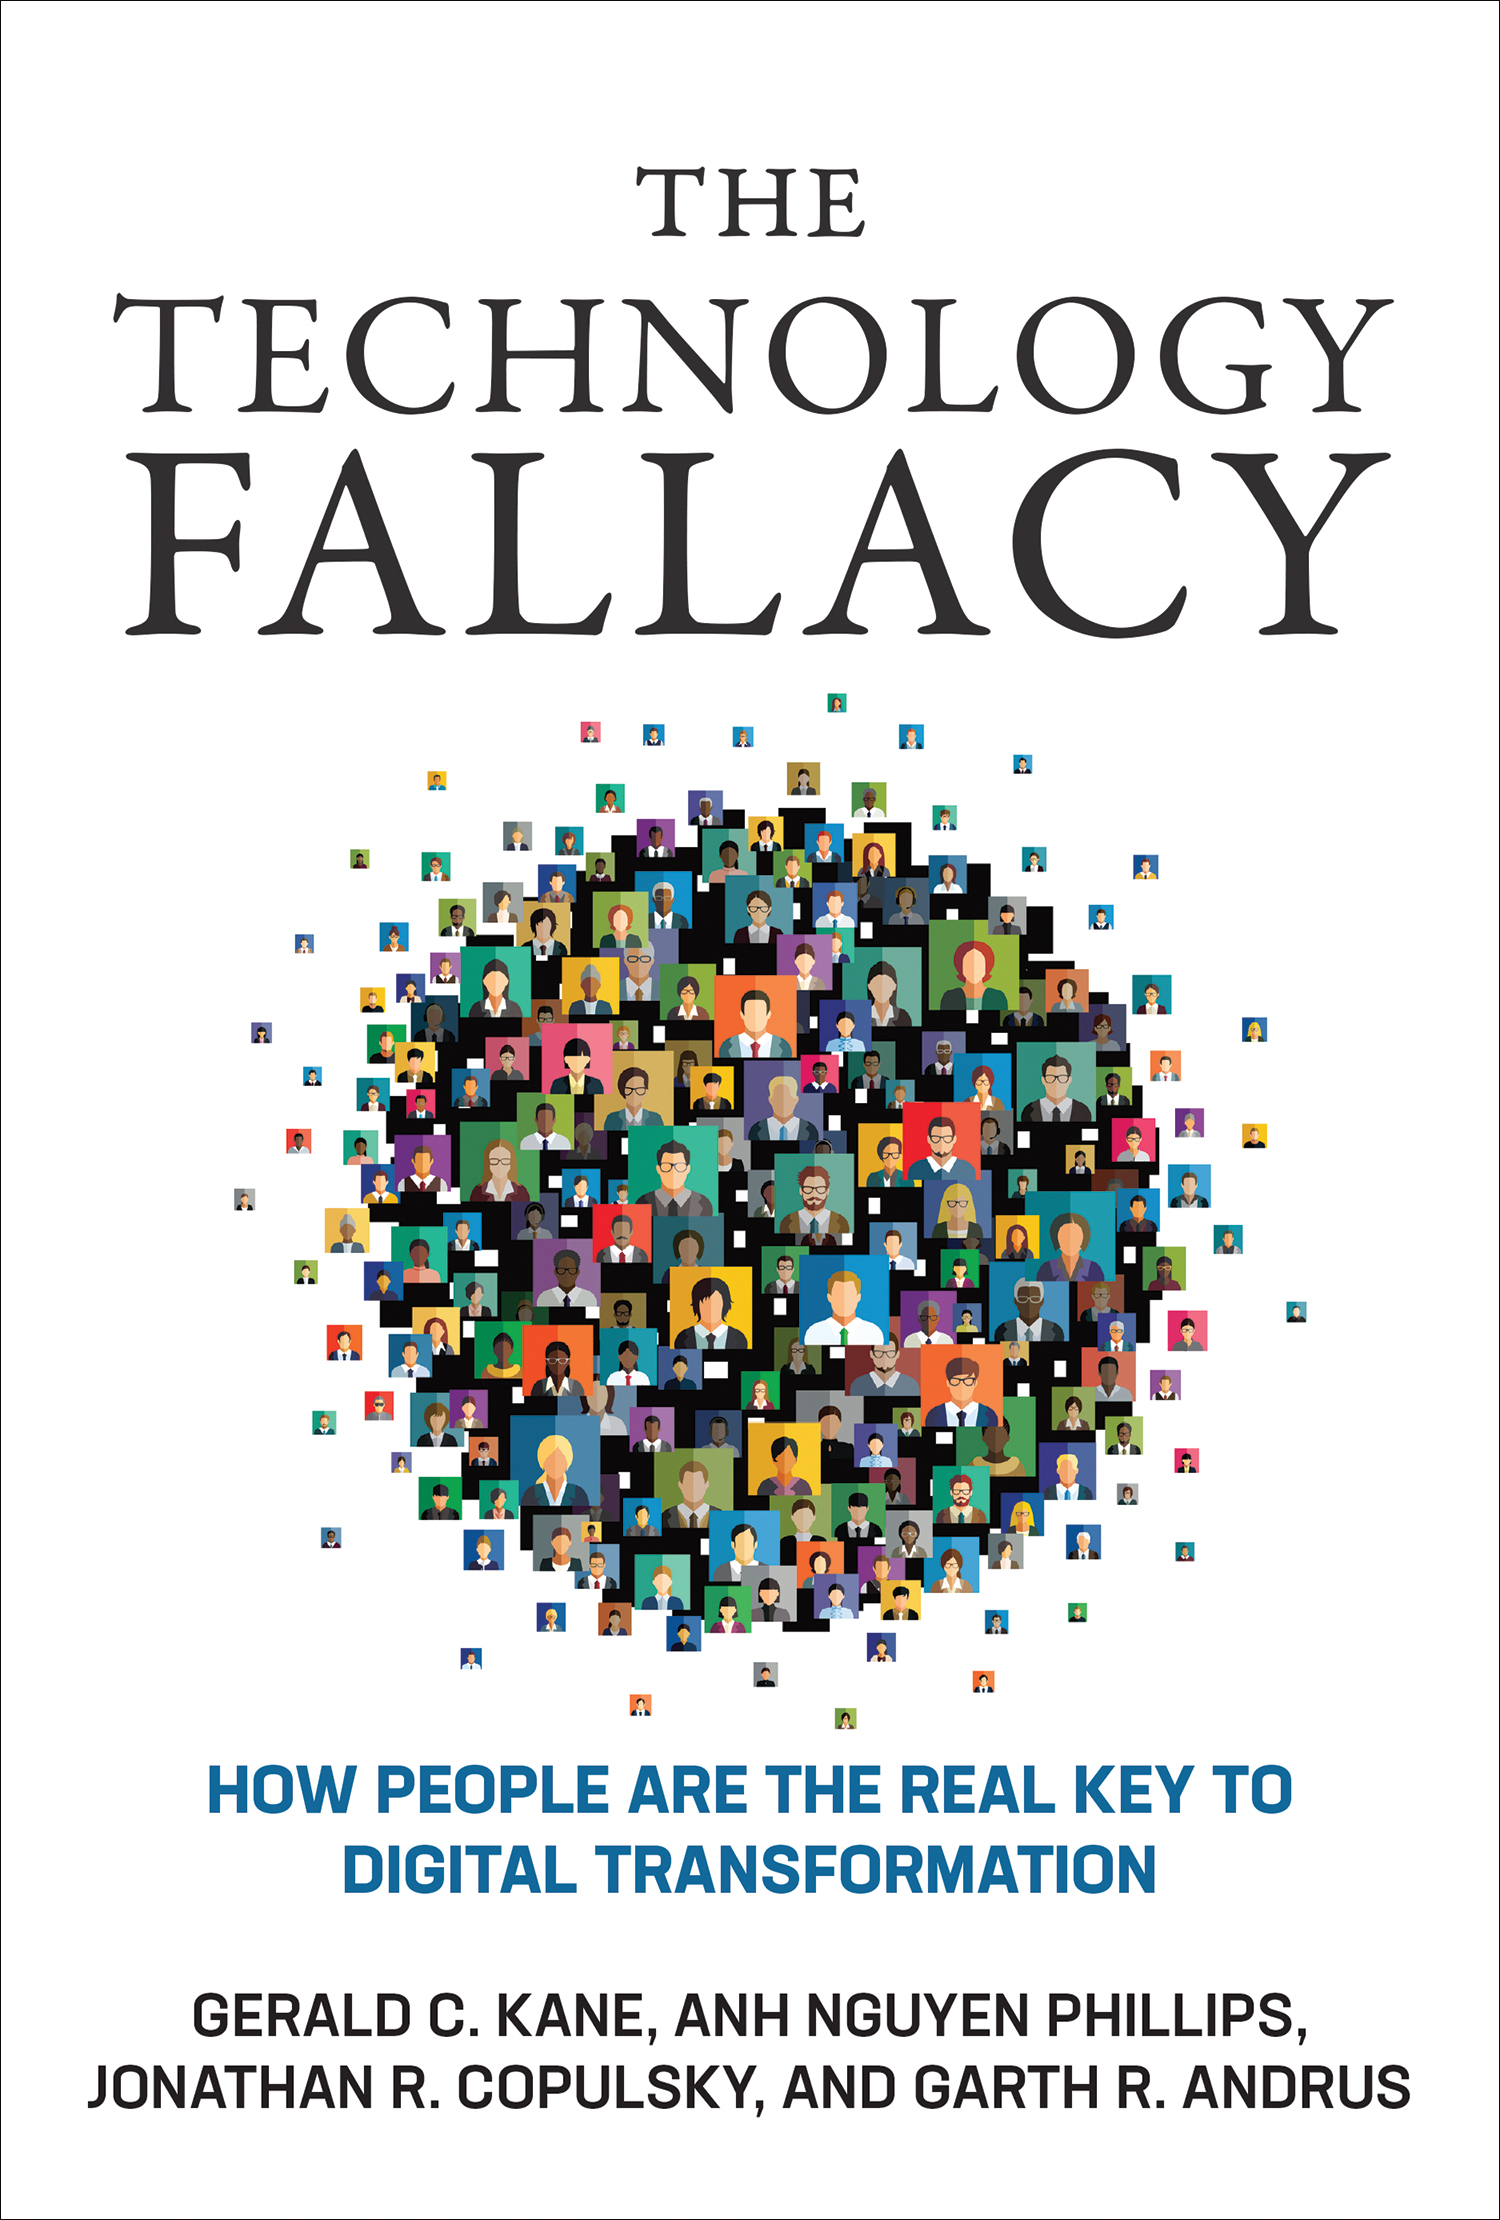 The Technology Fallacy: How People Are the Real Key to Digital Transformation - MIT SMR Store